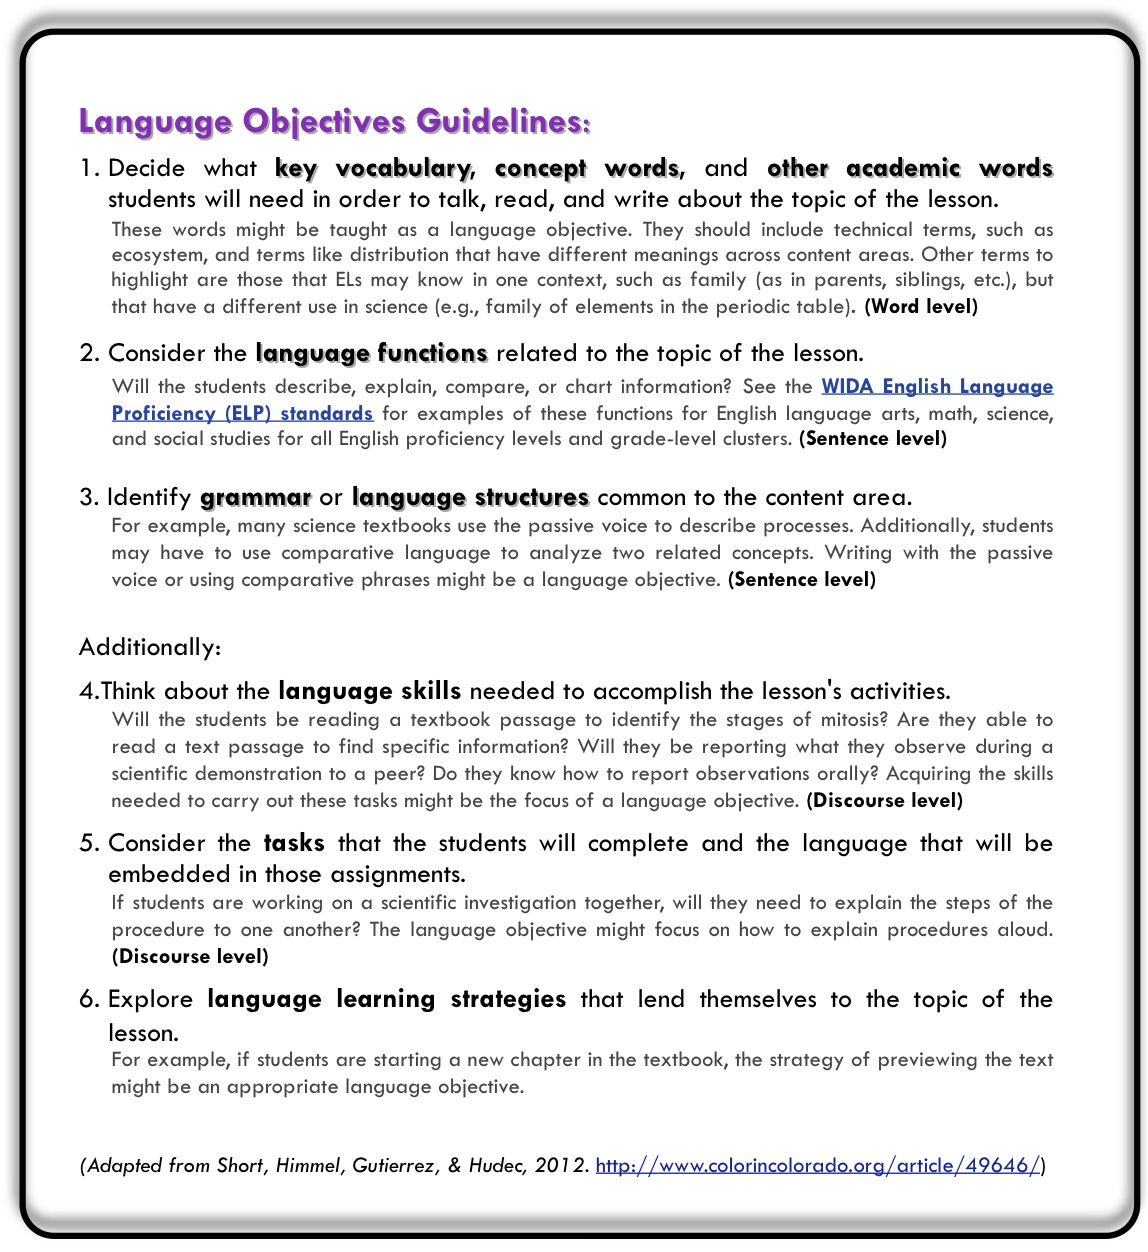 Guidelines To Write Language Objectives Adapted From Adapted From